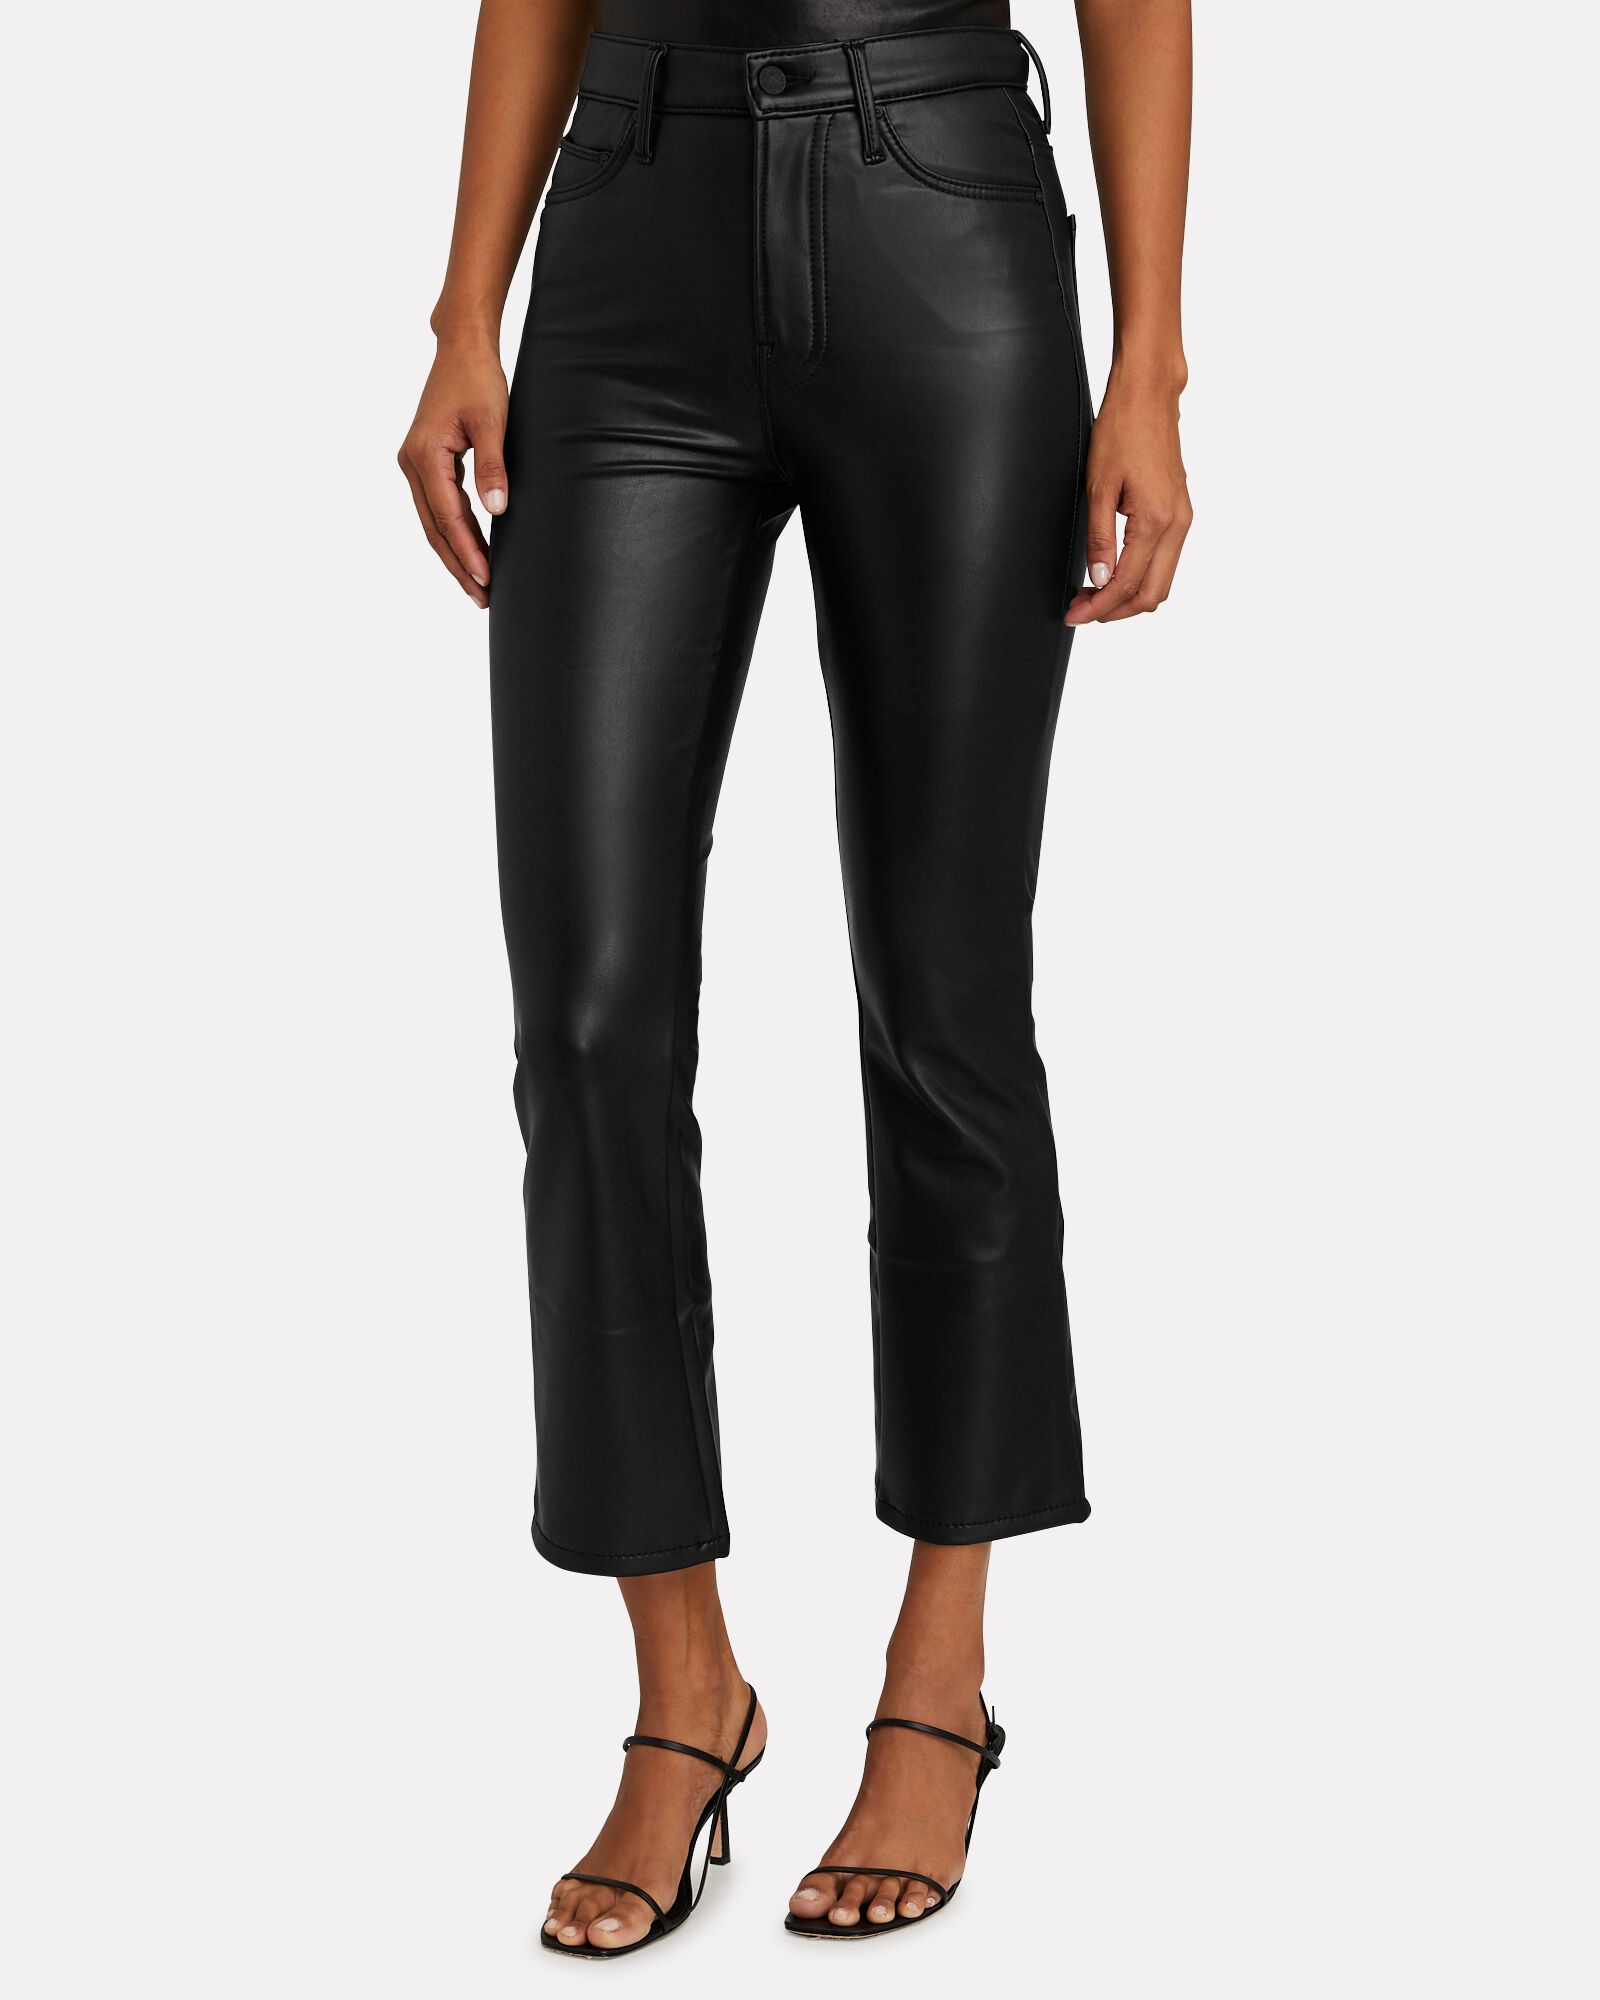 The Insider Ankle Faux Leather Jeans, FAUX SHOW, hi-res